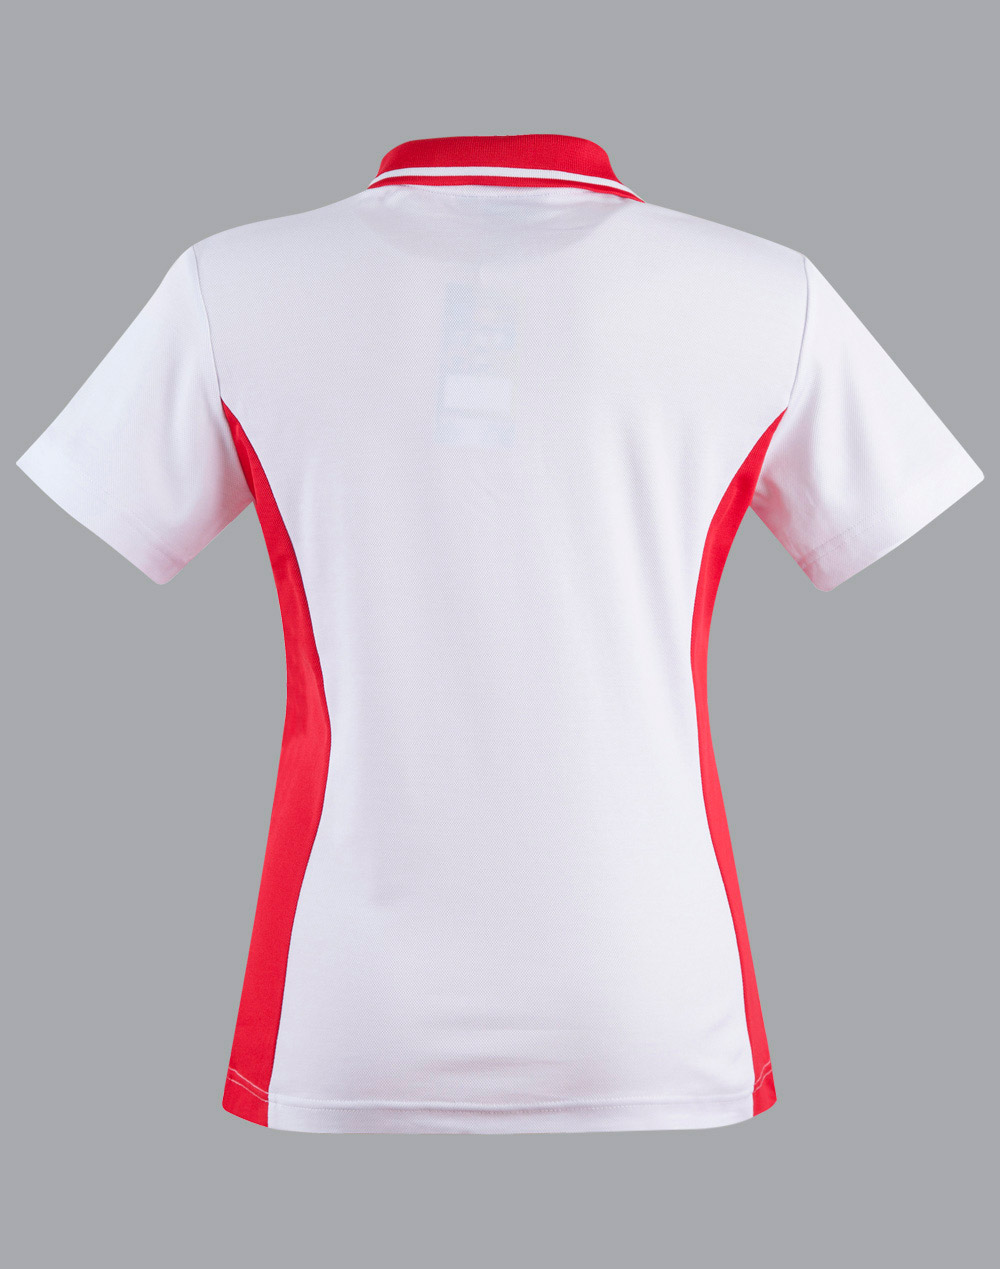 https://s3-ap-southeast-1.amazonaws.com/ws-imgs/POLOSHIRTS/PS74_WhiteRed_Back.jpg